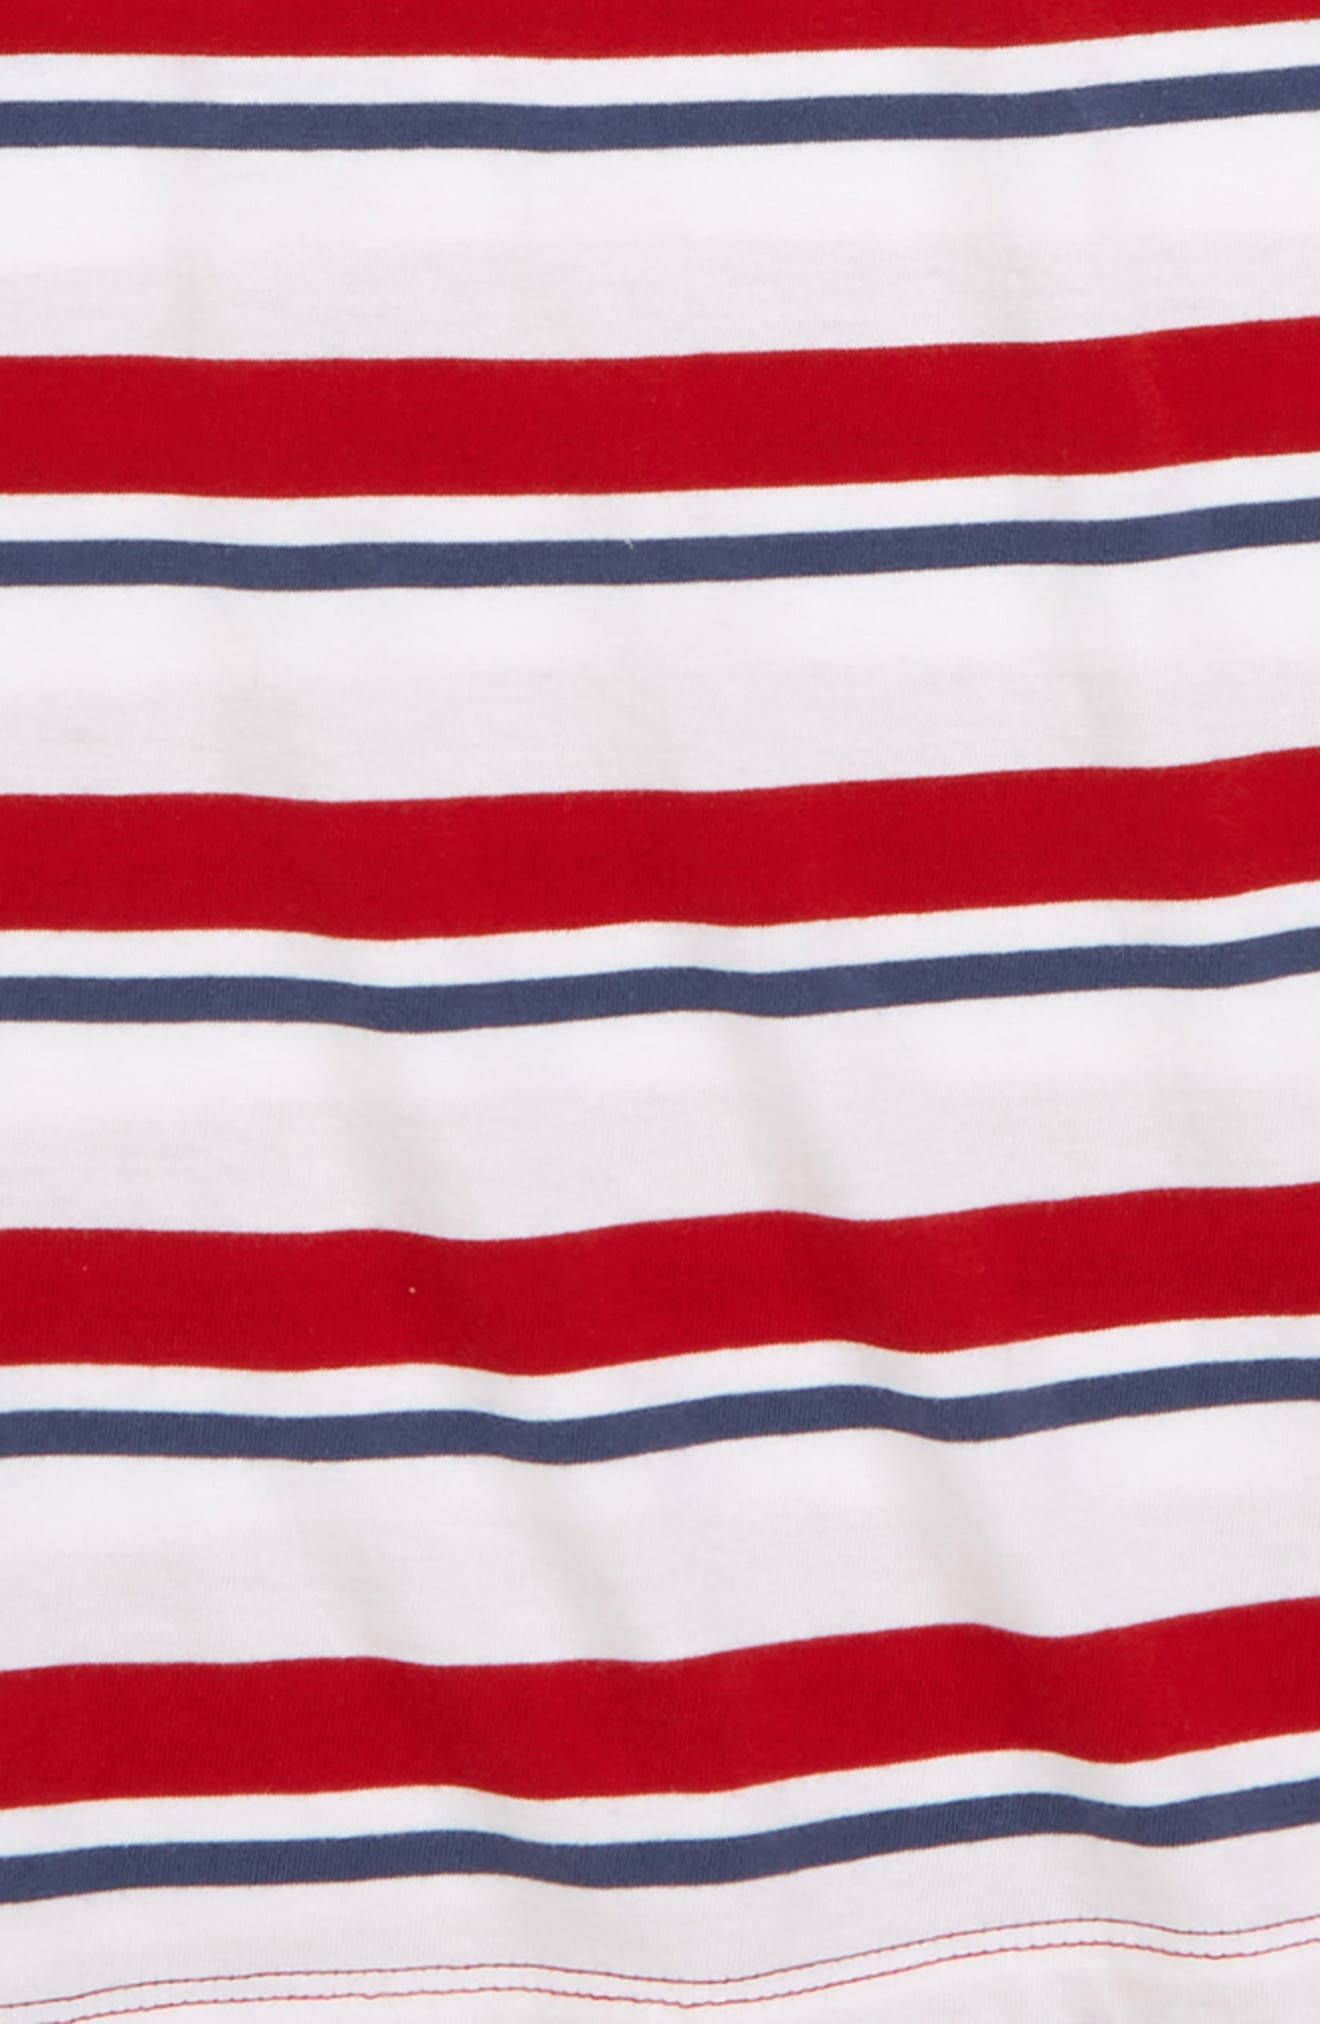 Repp Stripe T-Shirt,                             Alternate thumbnail 2, color,                             Red Samba- White Stripe